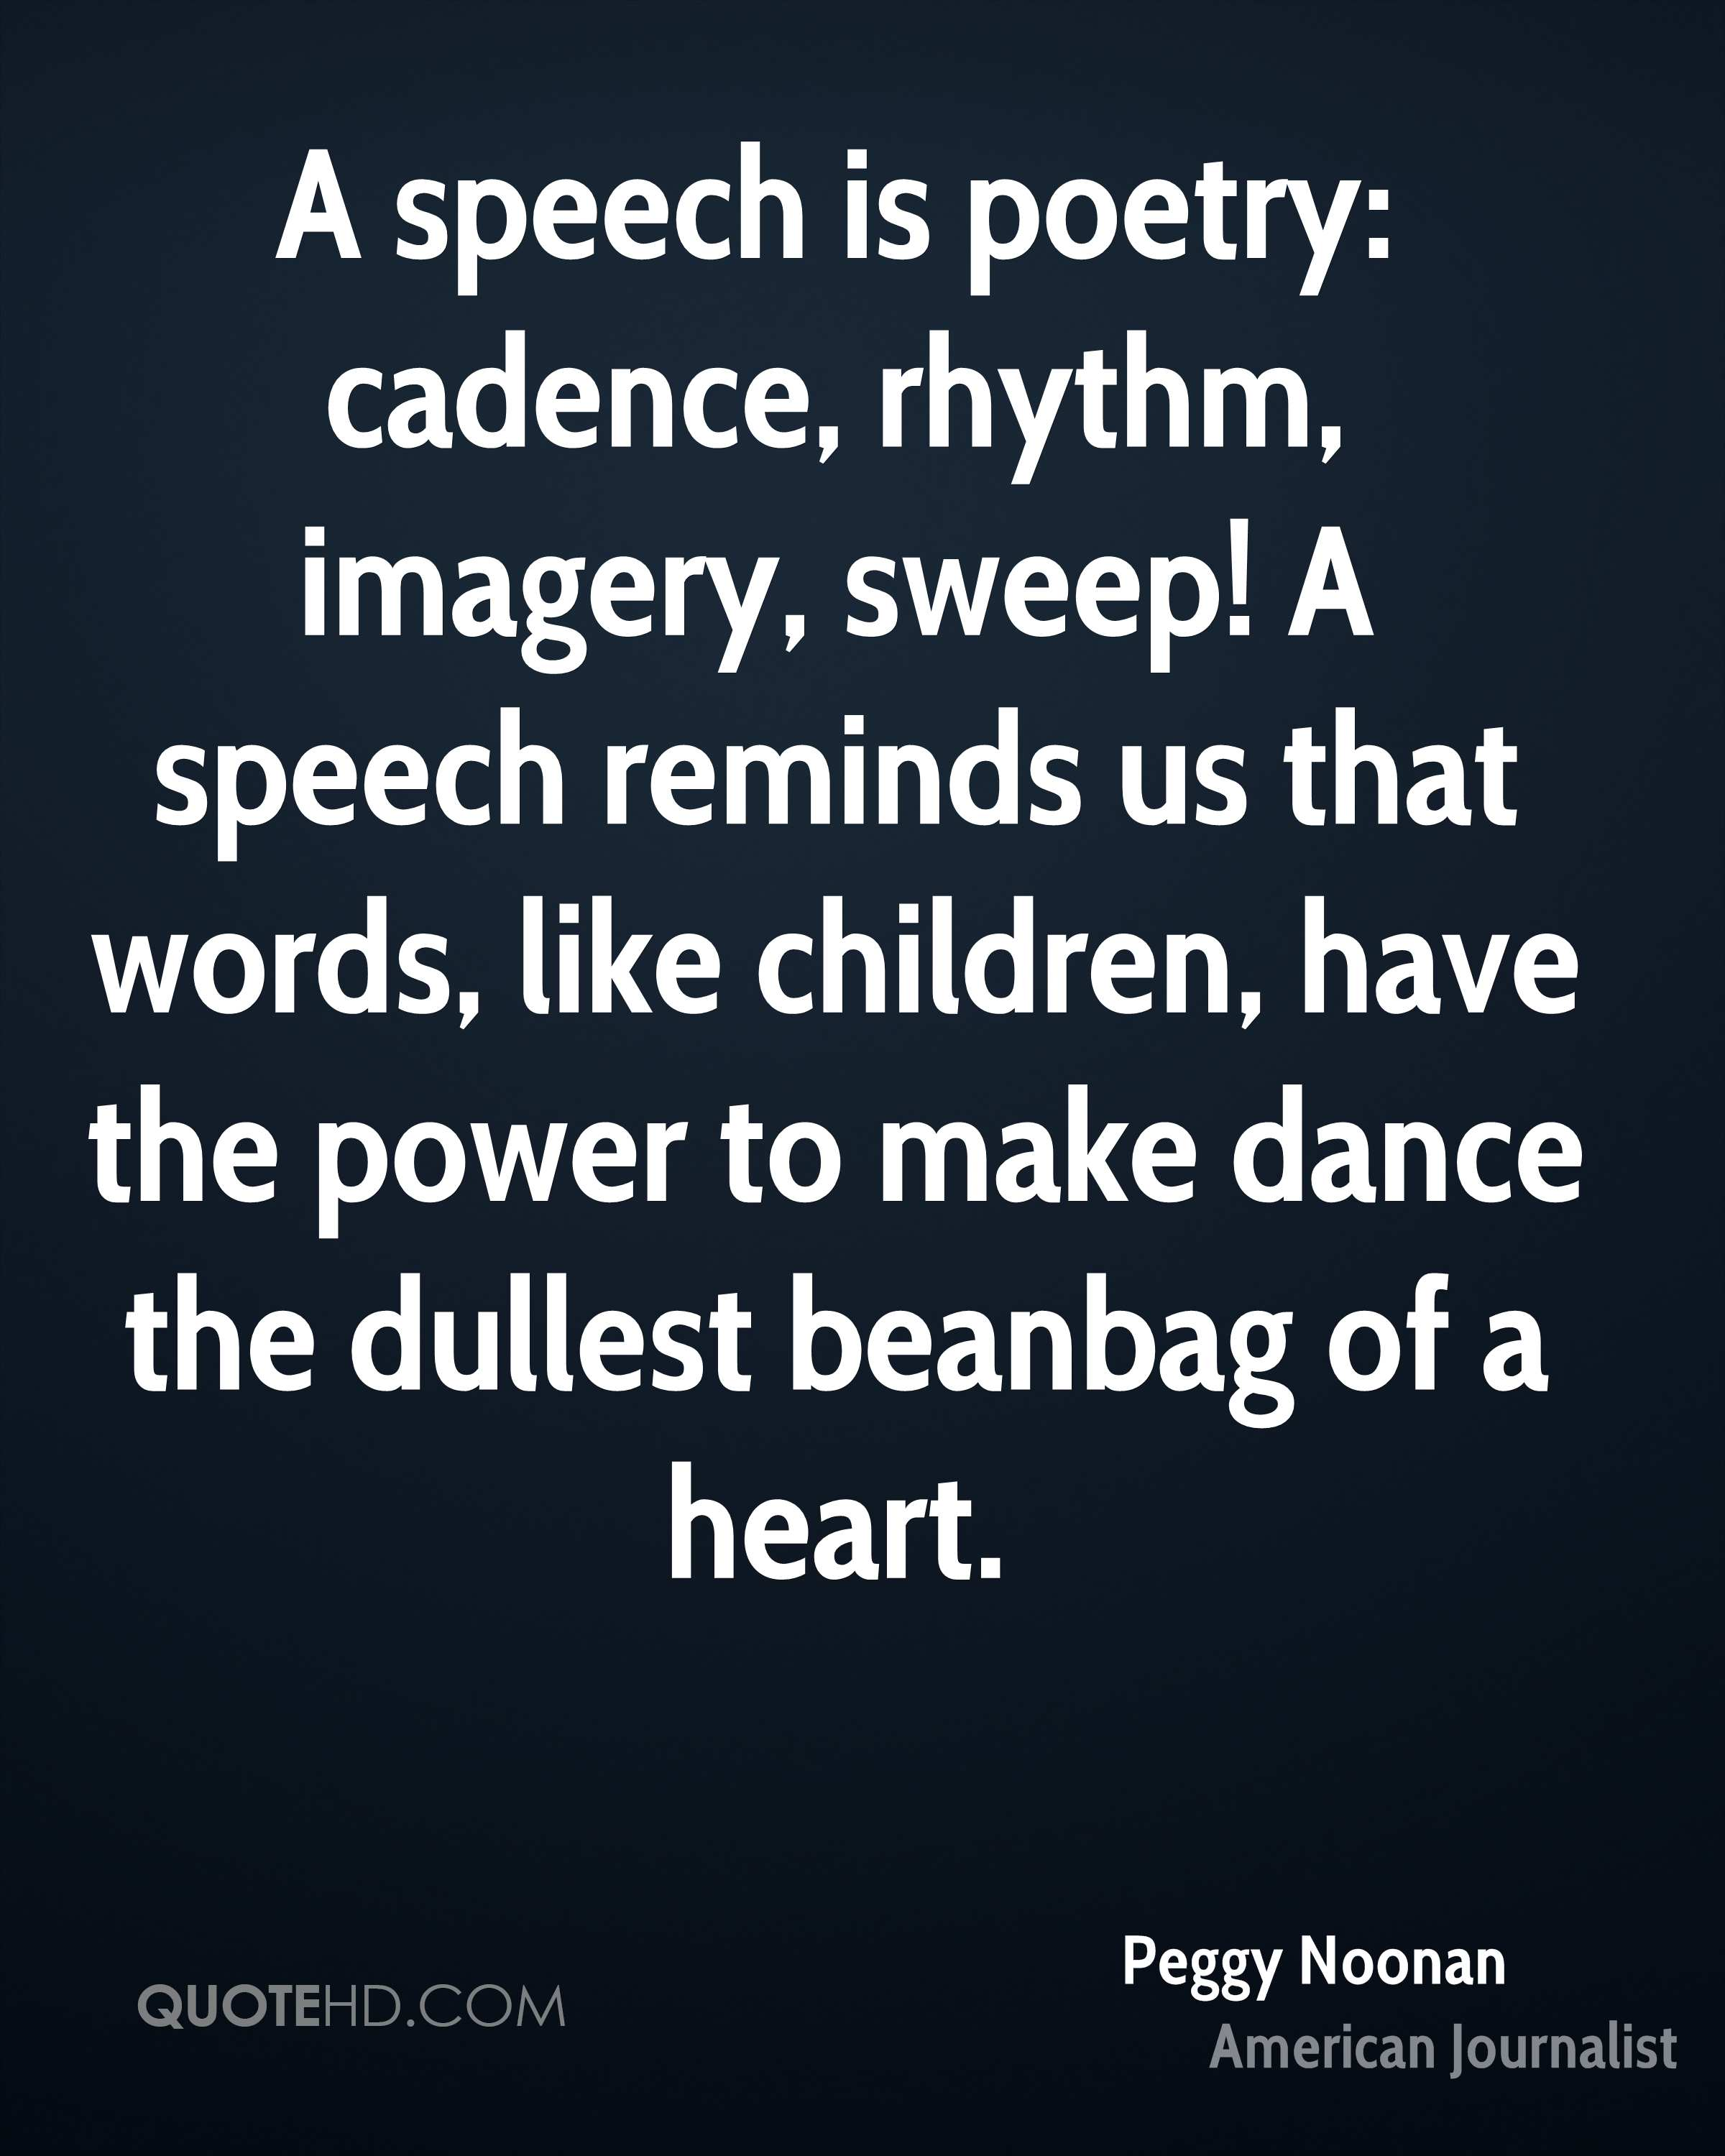 poetry speech Abashed abrasive abusive accepting acerbic acquiescent admiring adoring  affectionate aghast allusive amused angry anxious apologetic apprehensive.